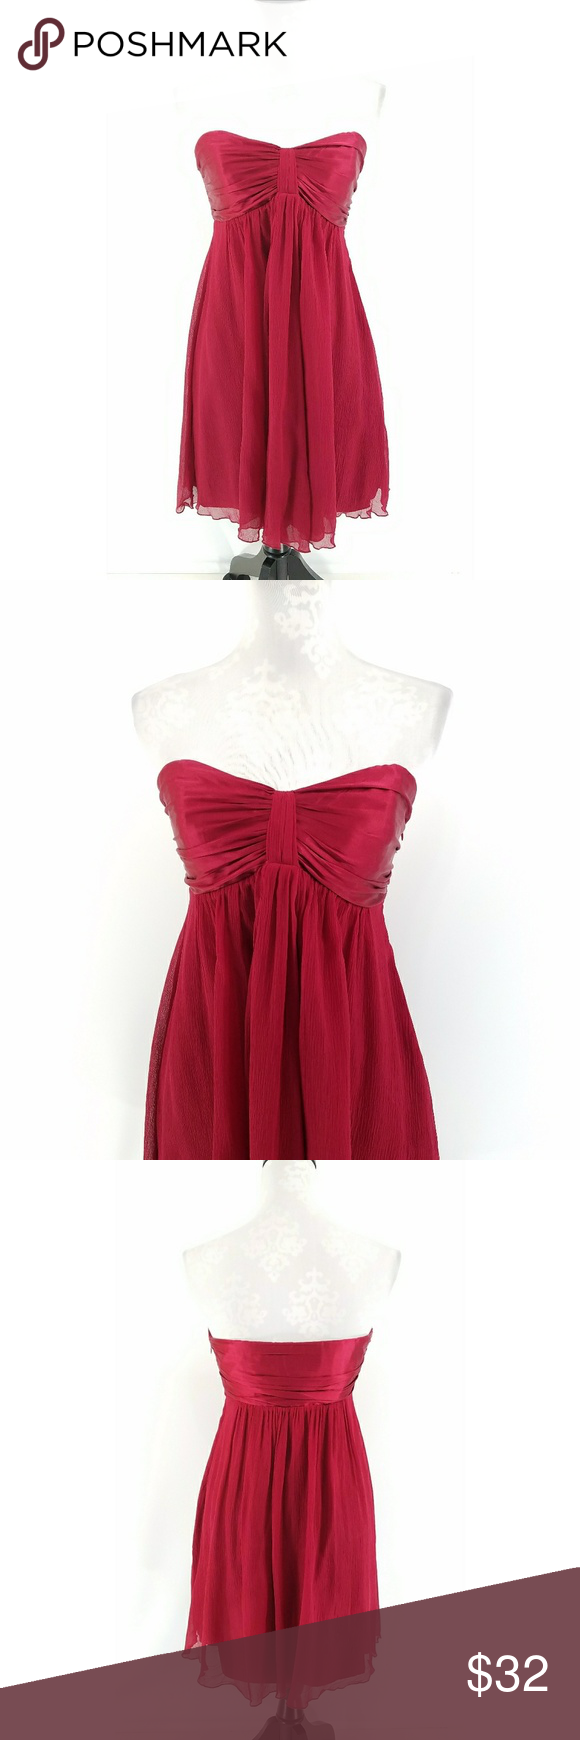 29d4d5917b81 NWT Express Red Chiffon Strapless Dress Women s Express Dress Lined Side  zipper 95% Silk